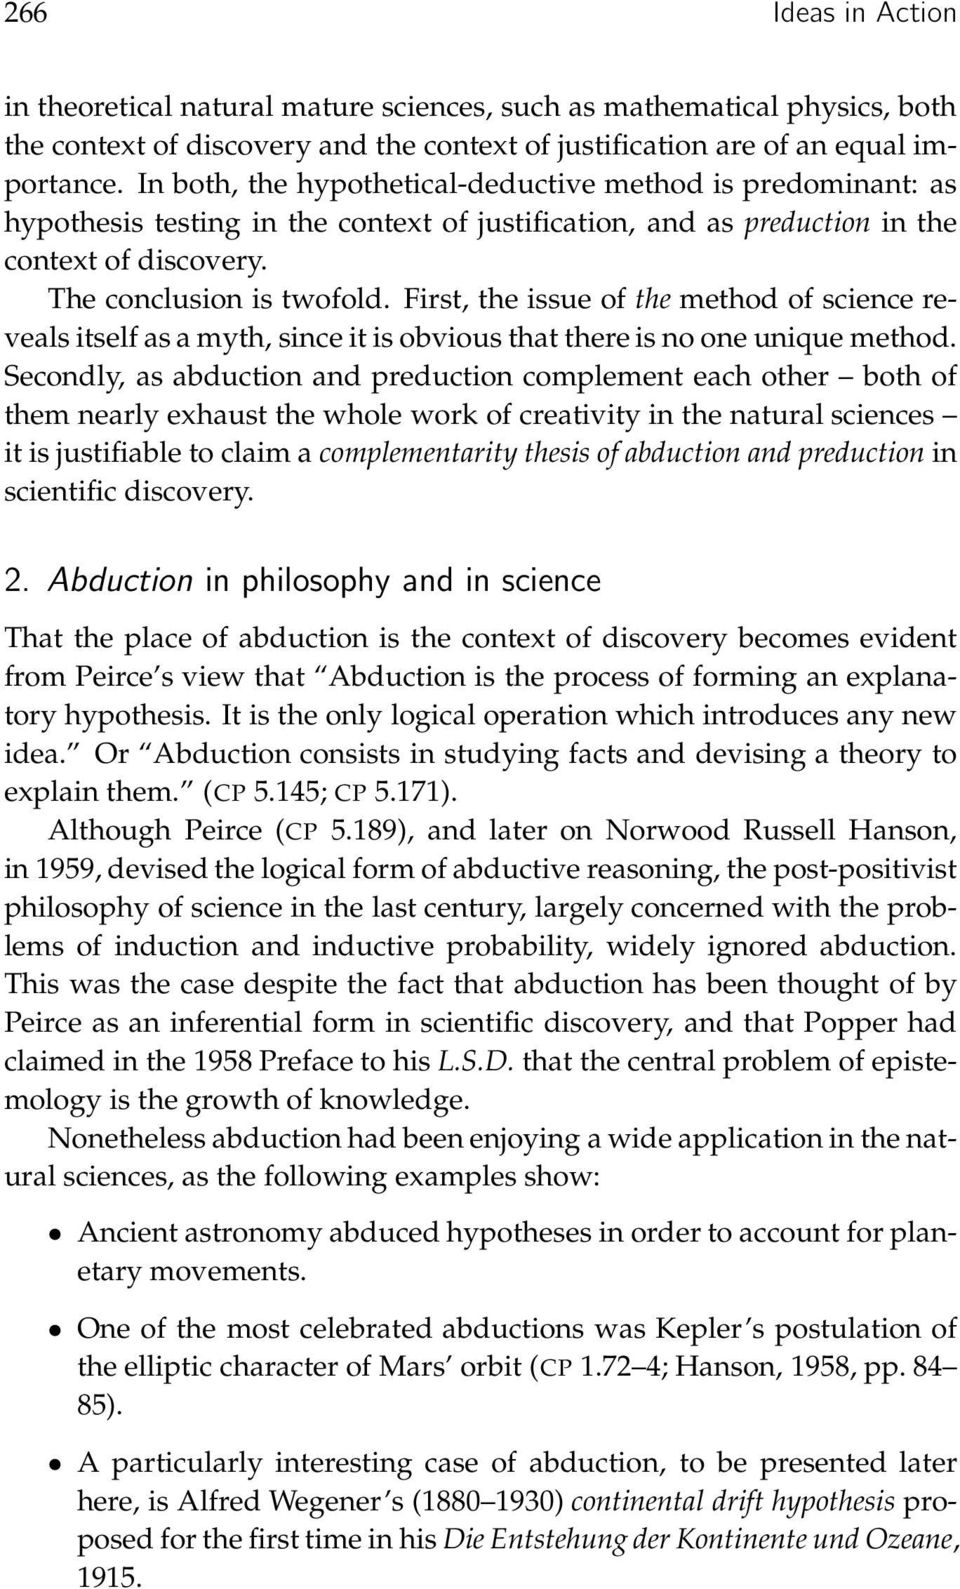 First, the issue of the method of science revealsitselfasamyth,sinceitisobviousthatthereisnooneuniquemethod.